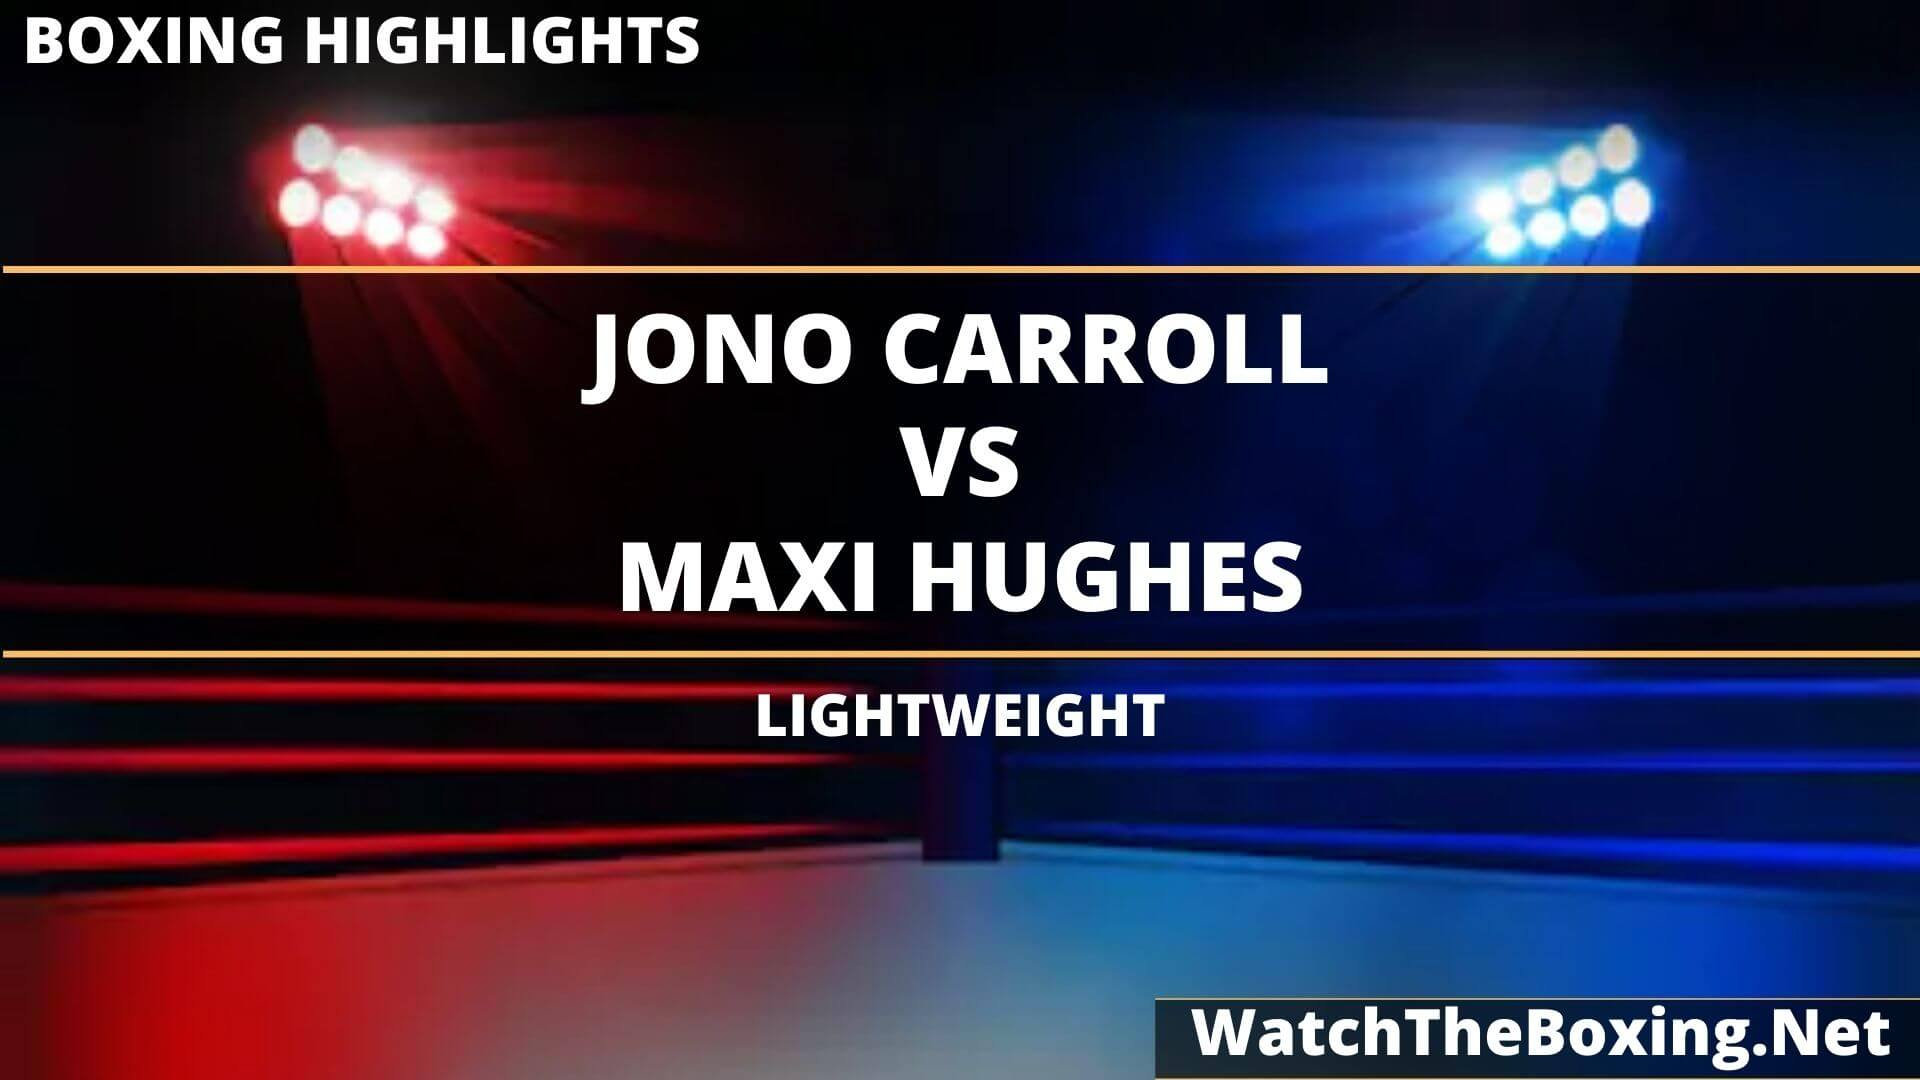 Jono Carroll Vs Maxi Hughes Highlights 2020 Lightweight